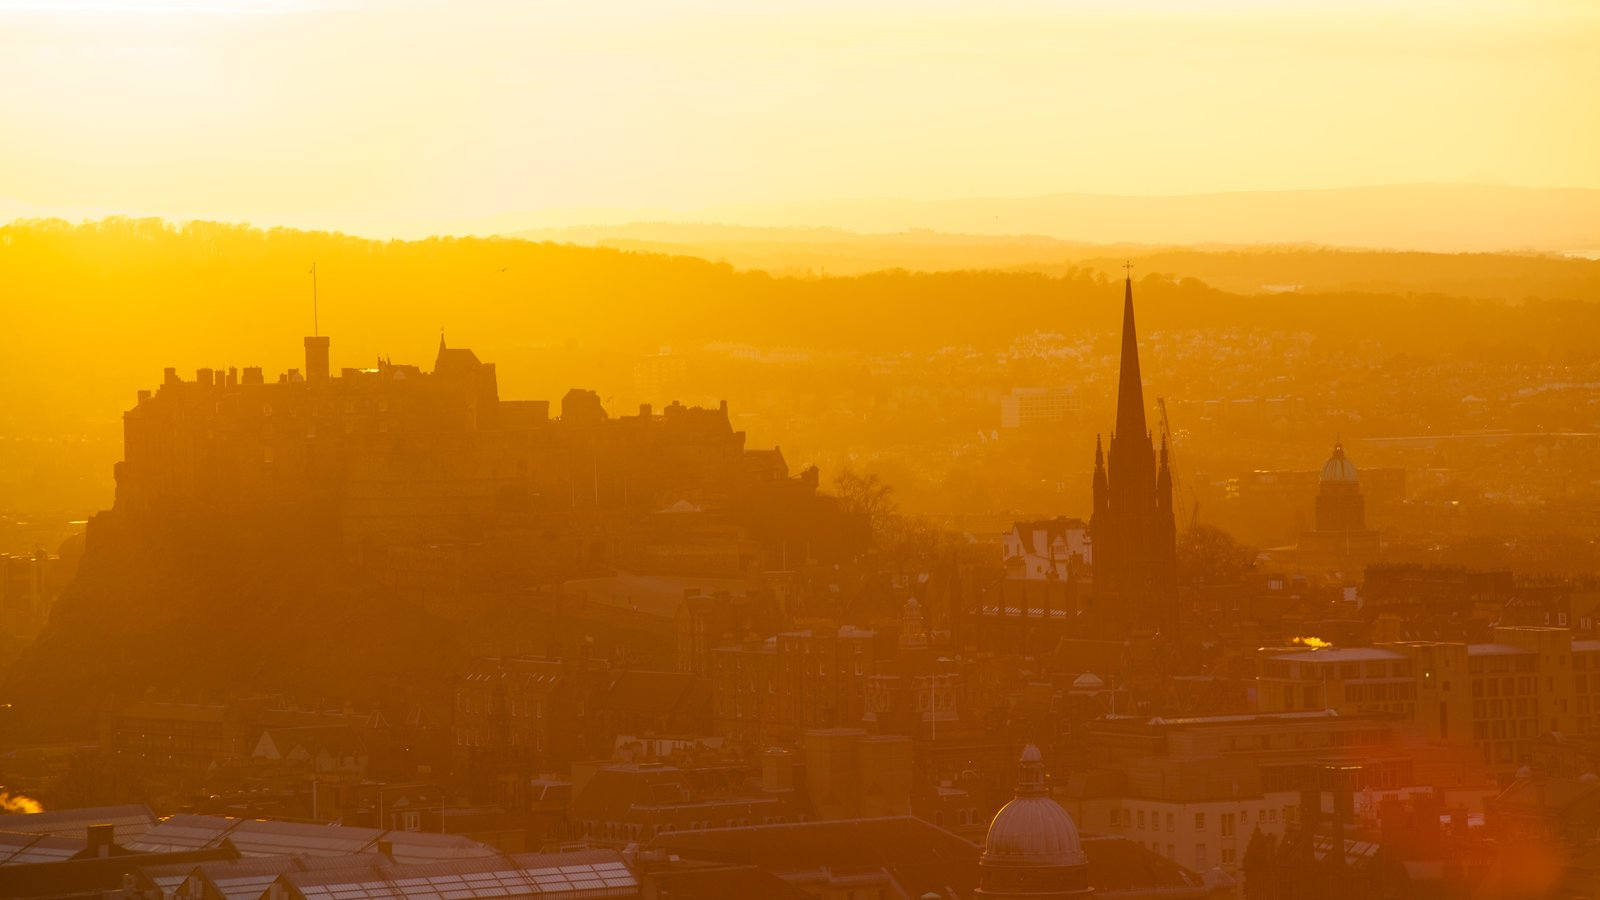 Arthur\\\'s Seat which includes heritage architecture, a sunset and a city